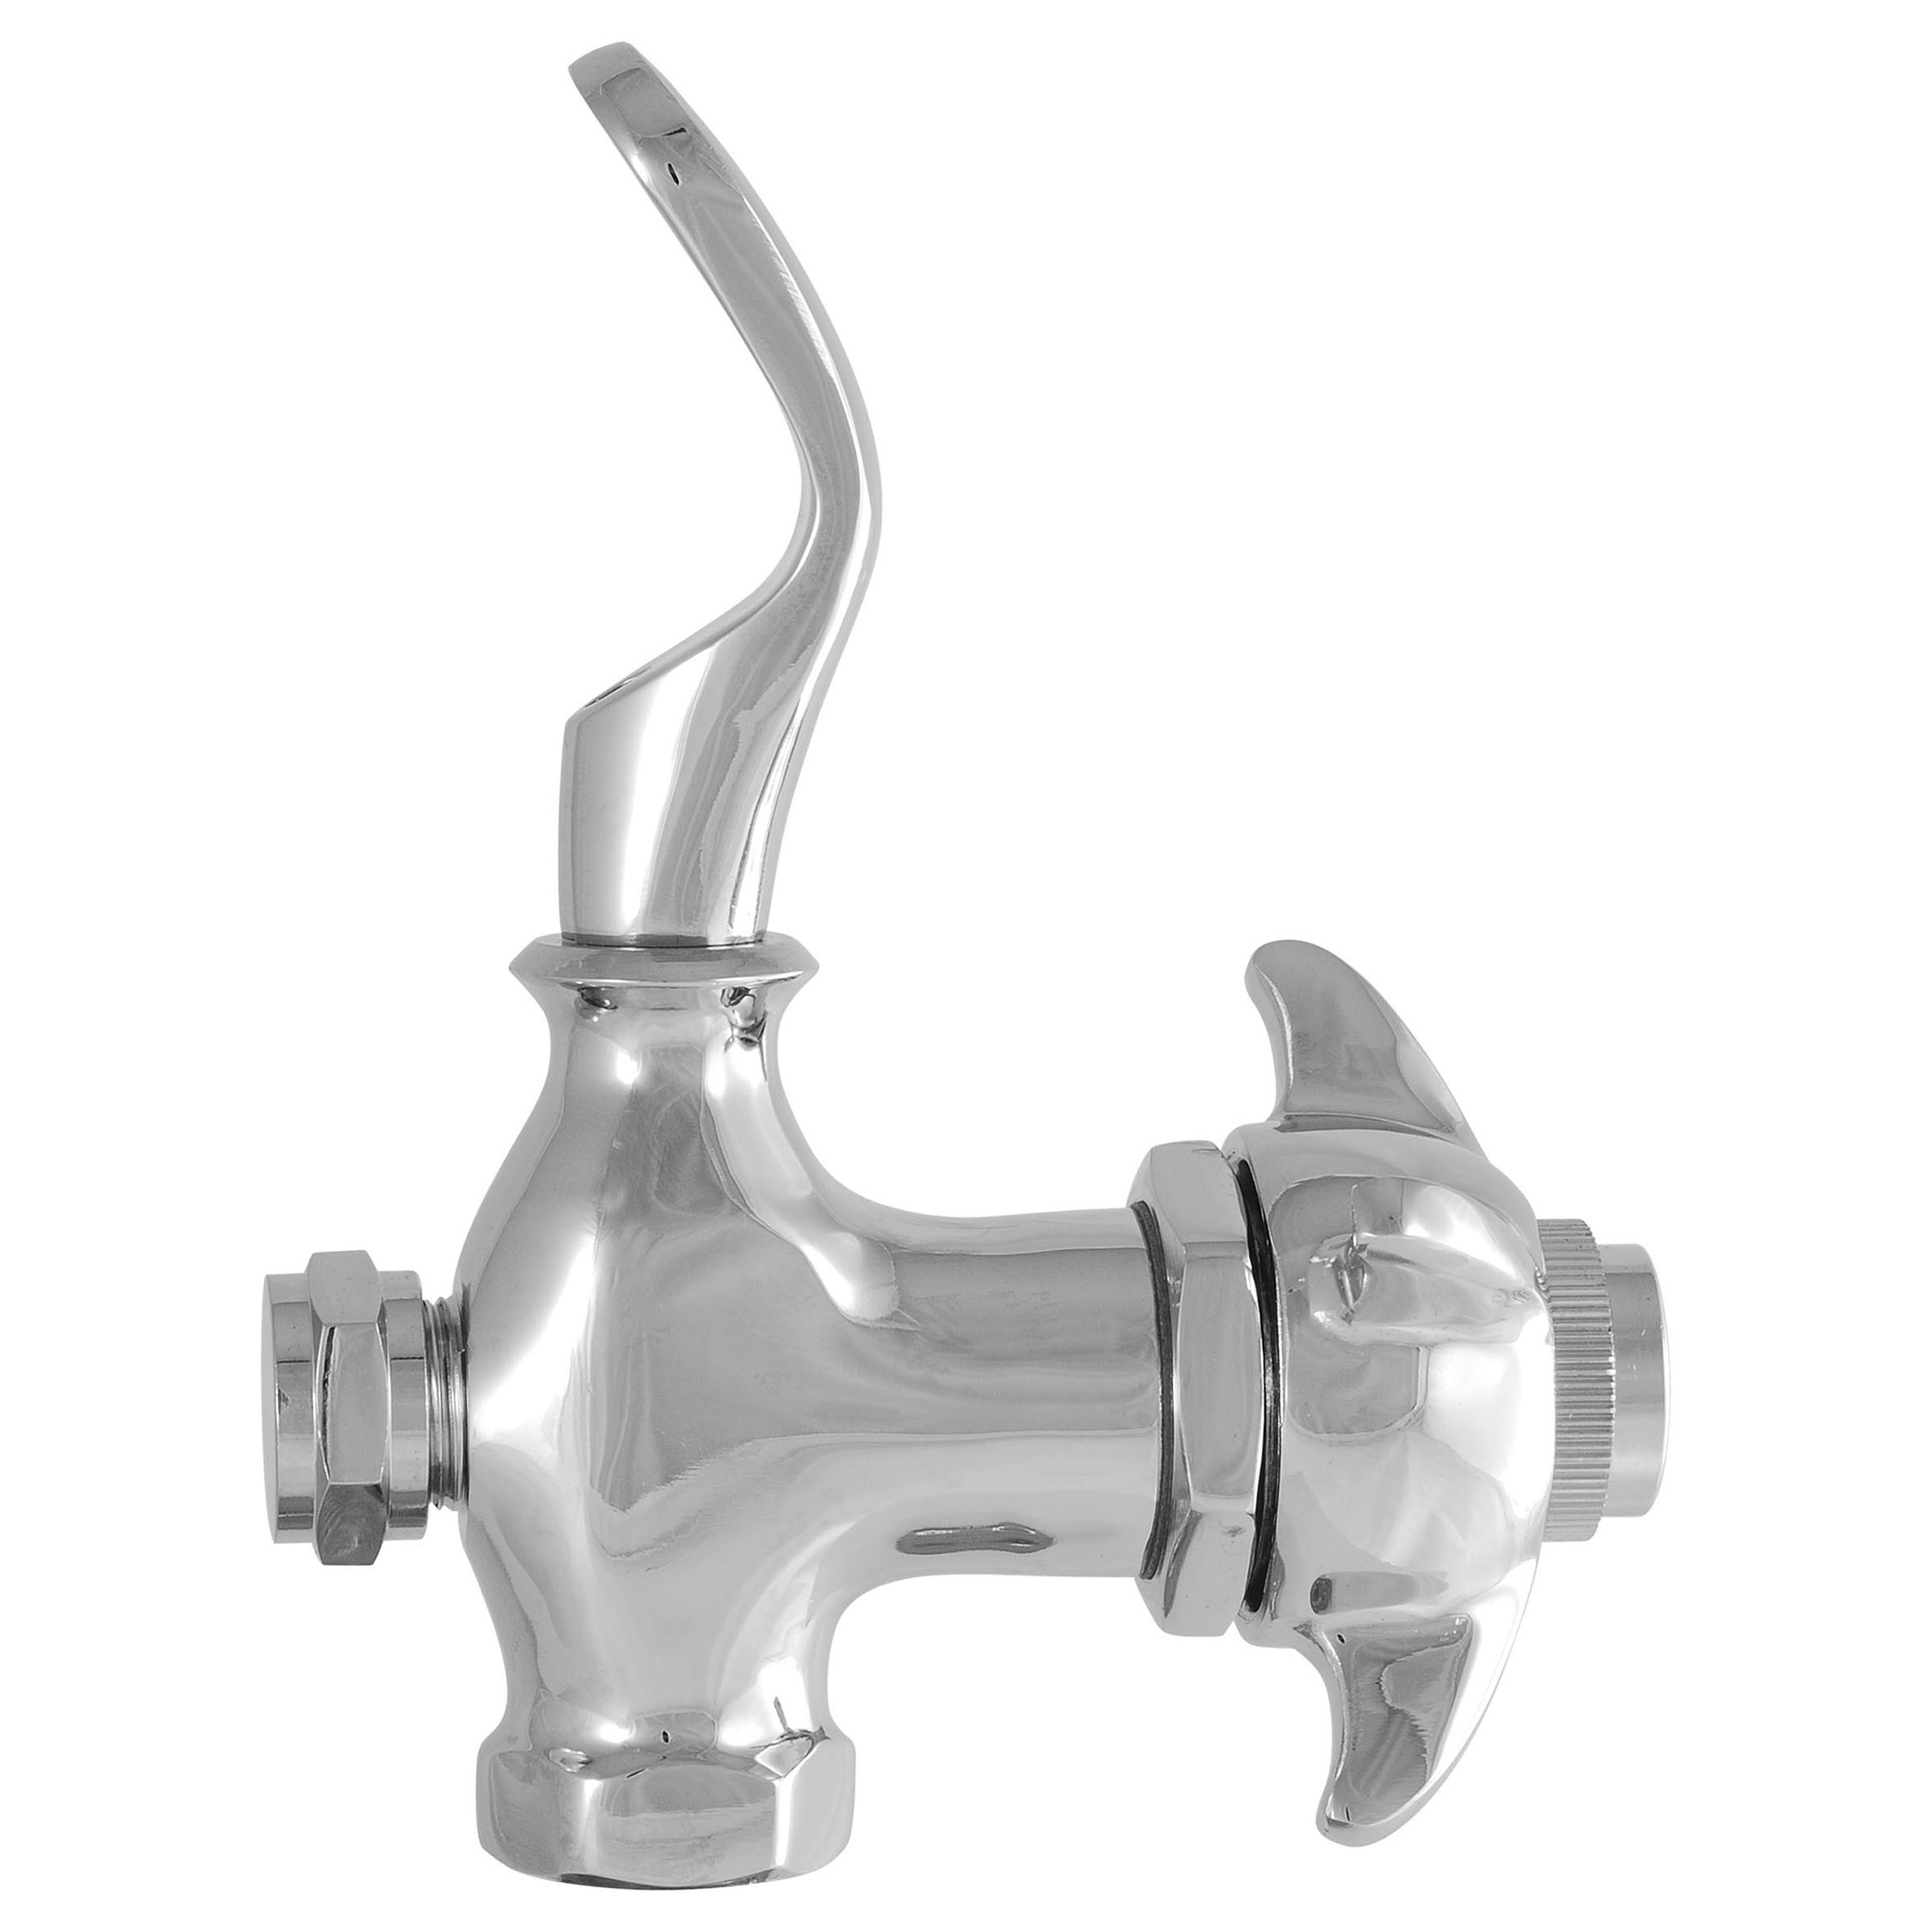 Ldr 013 5740cp Chrome Single Handle Drinking Fountain Faucet